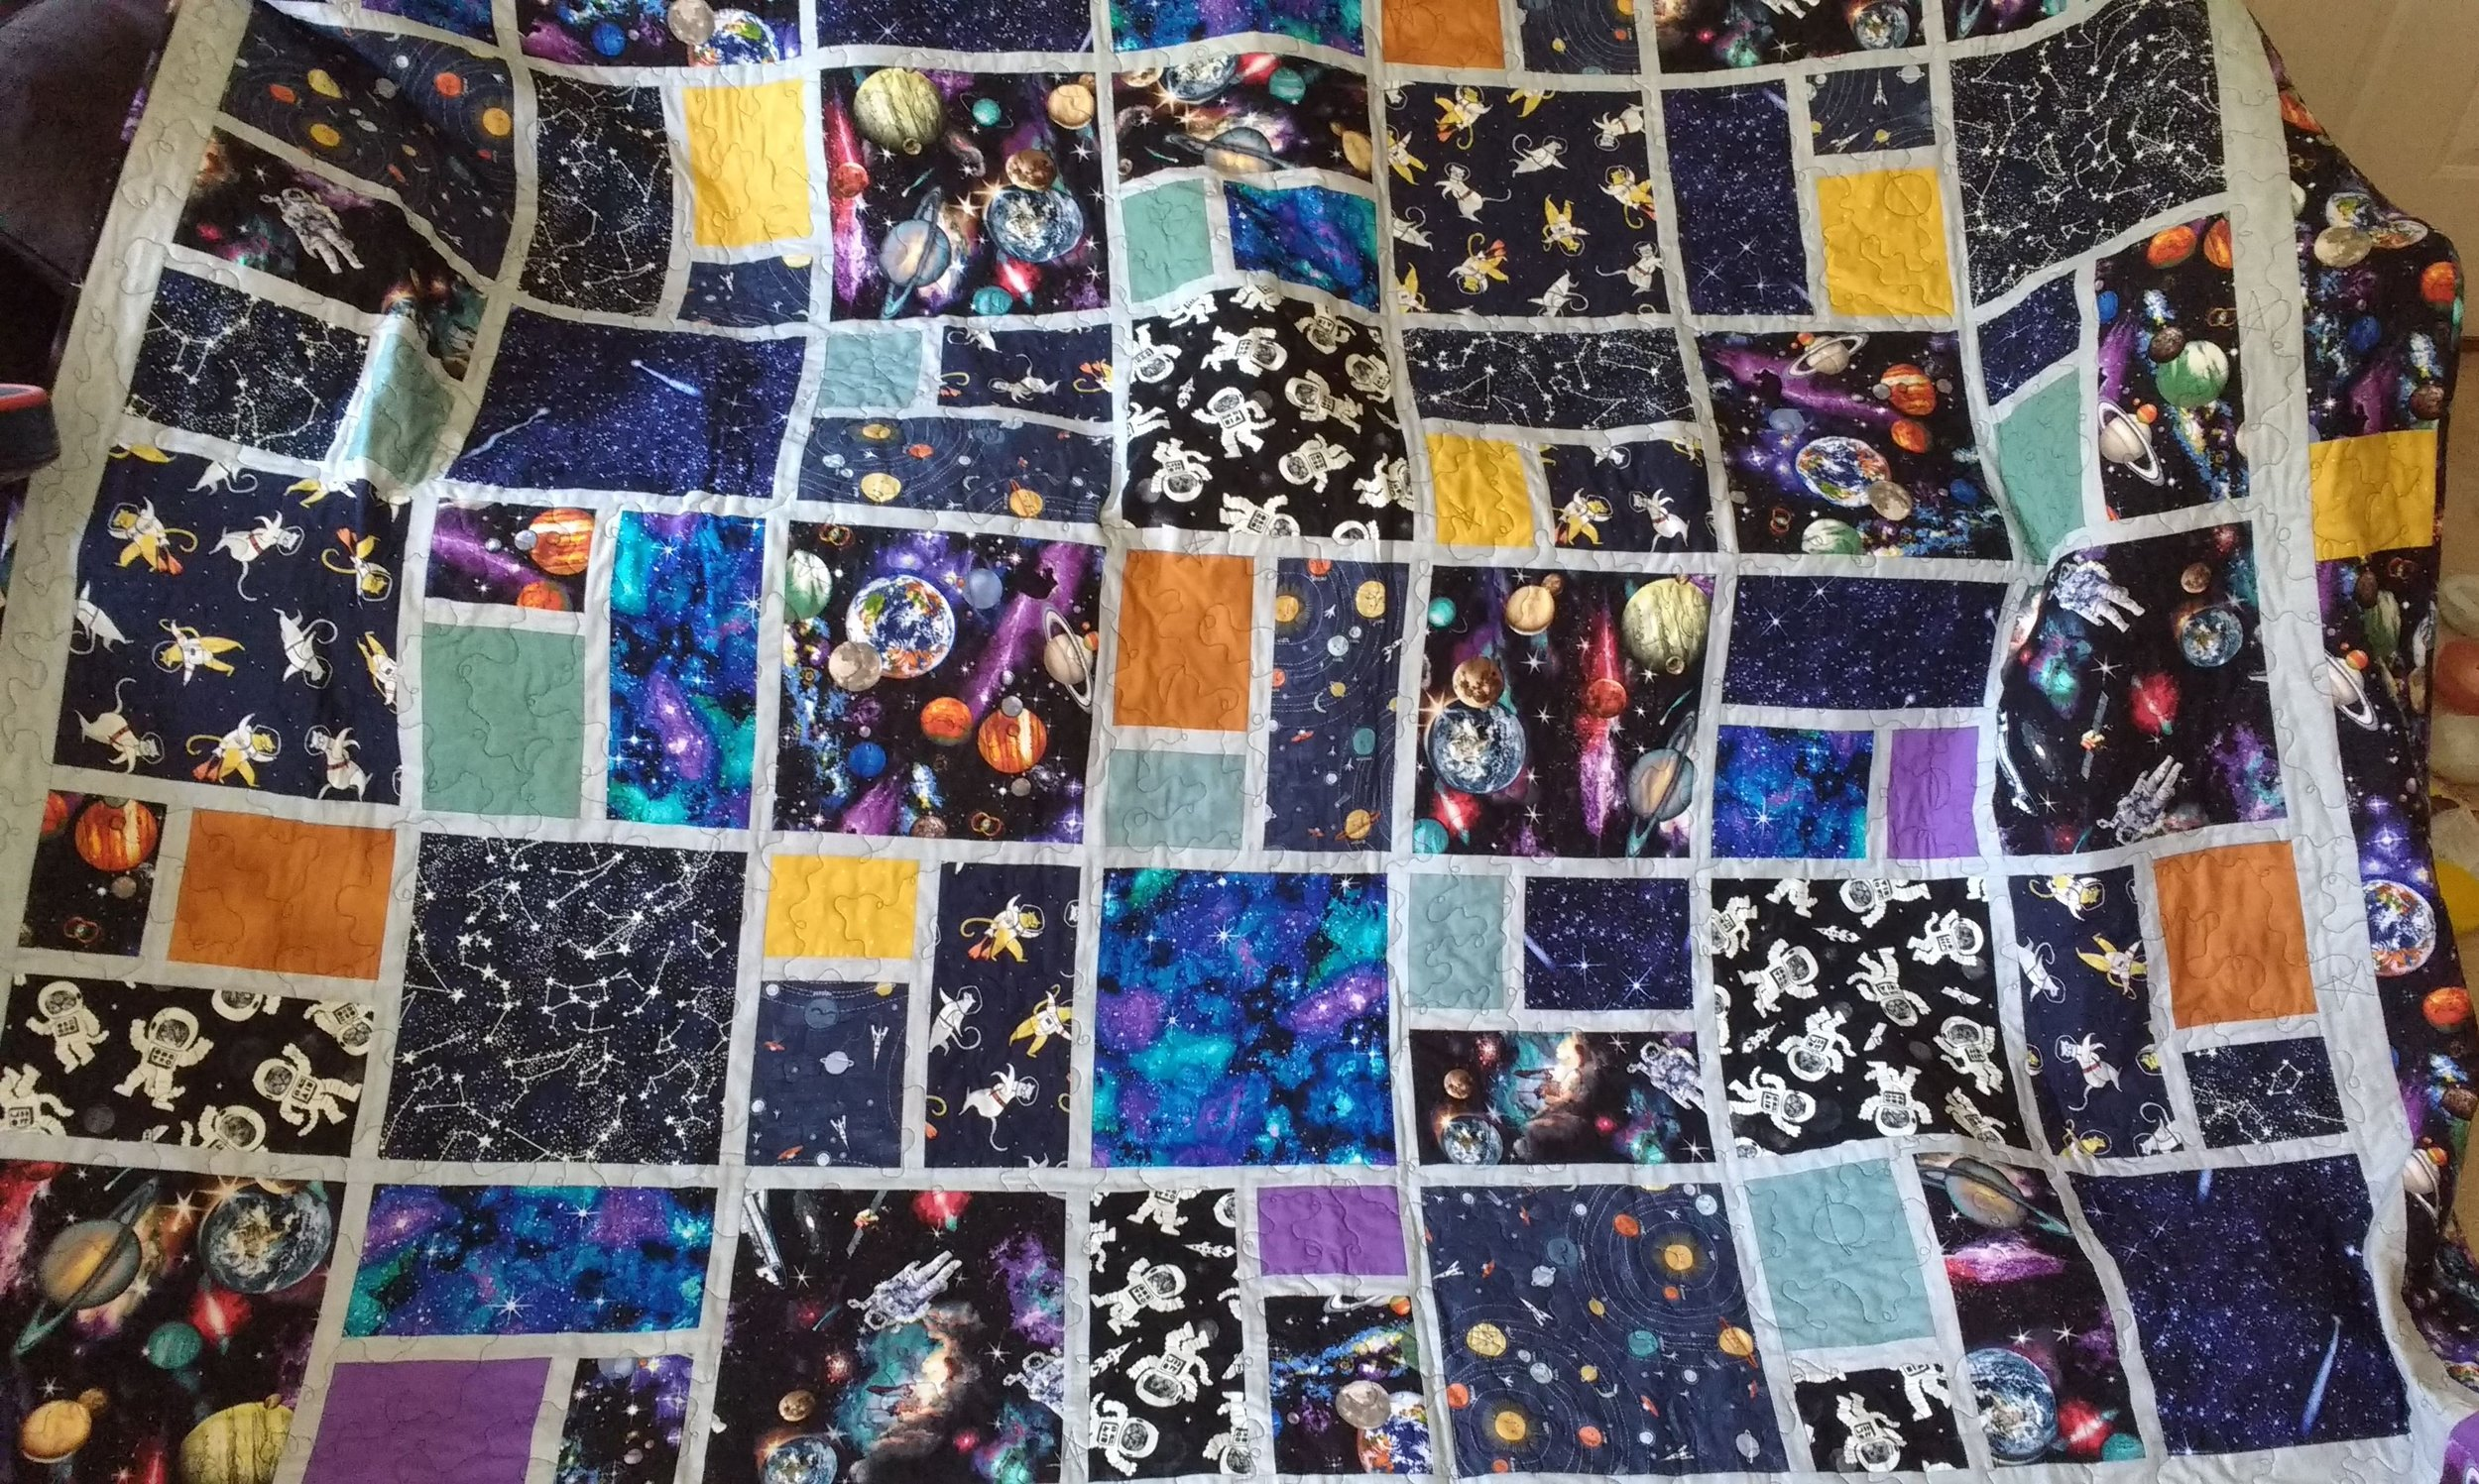 This is a huge bed quilt I designed, made especially for my Space Loving Granddaughter ! I included glow in the dark cats and constellations, and lots of Stars, Saturns and Crescent Moons in the quilting design! See the back below for details....